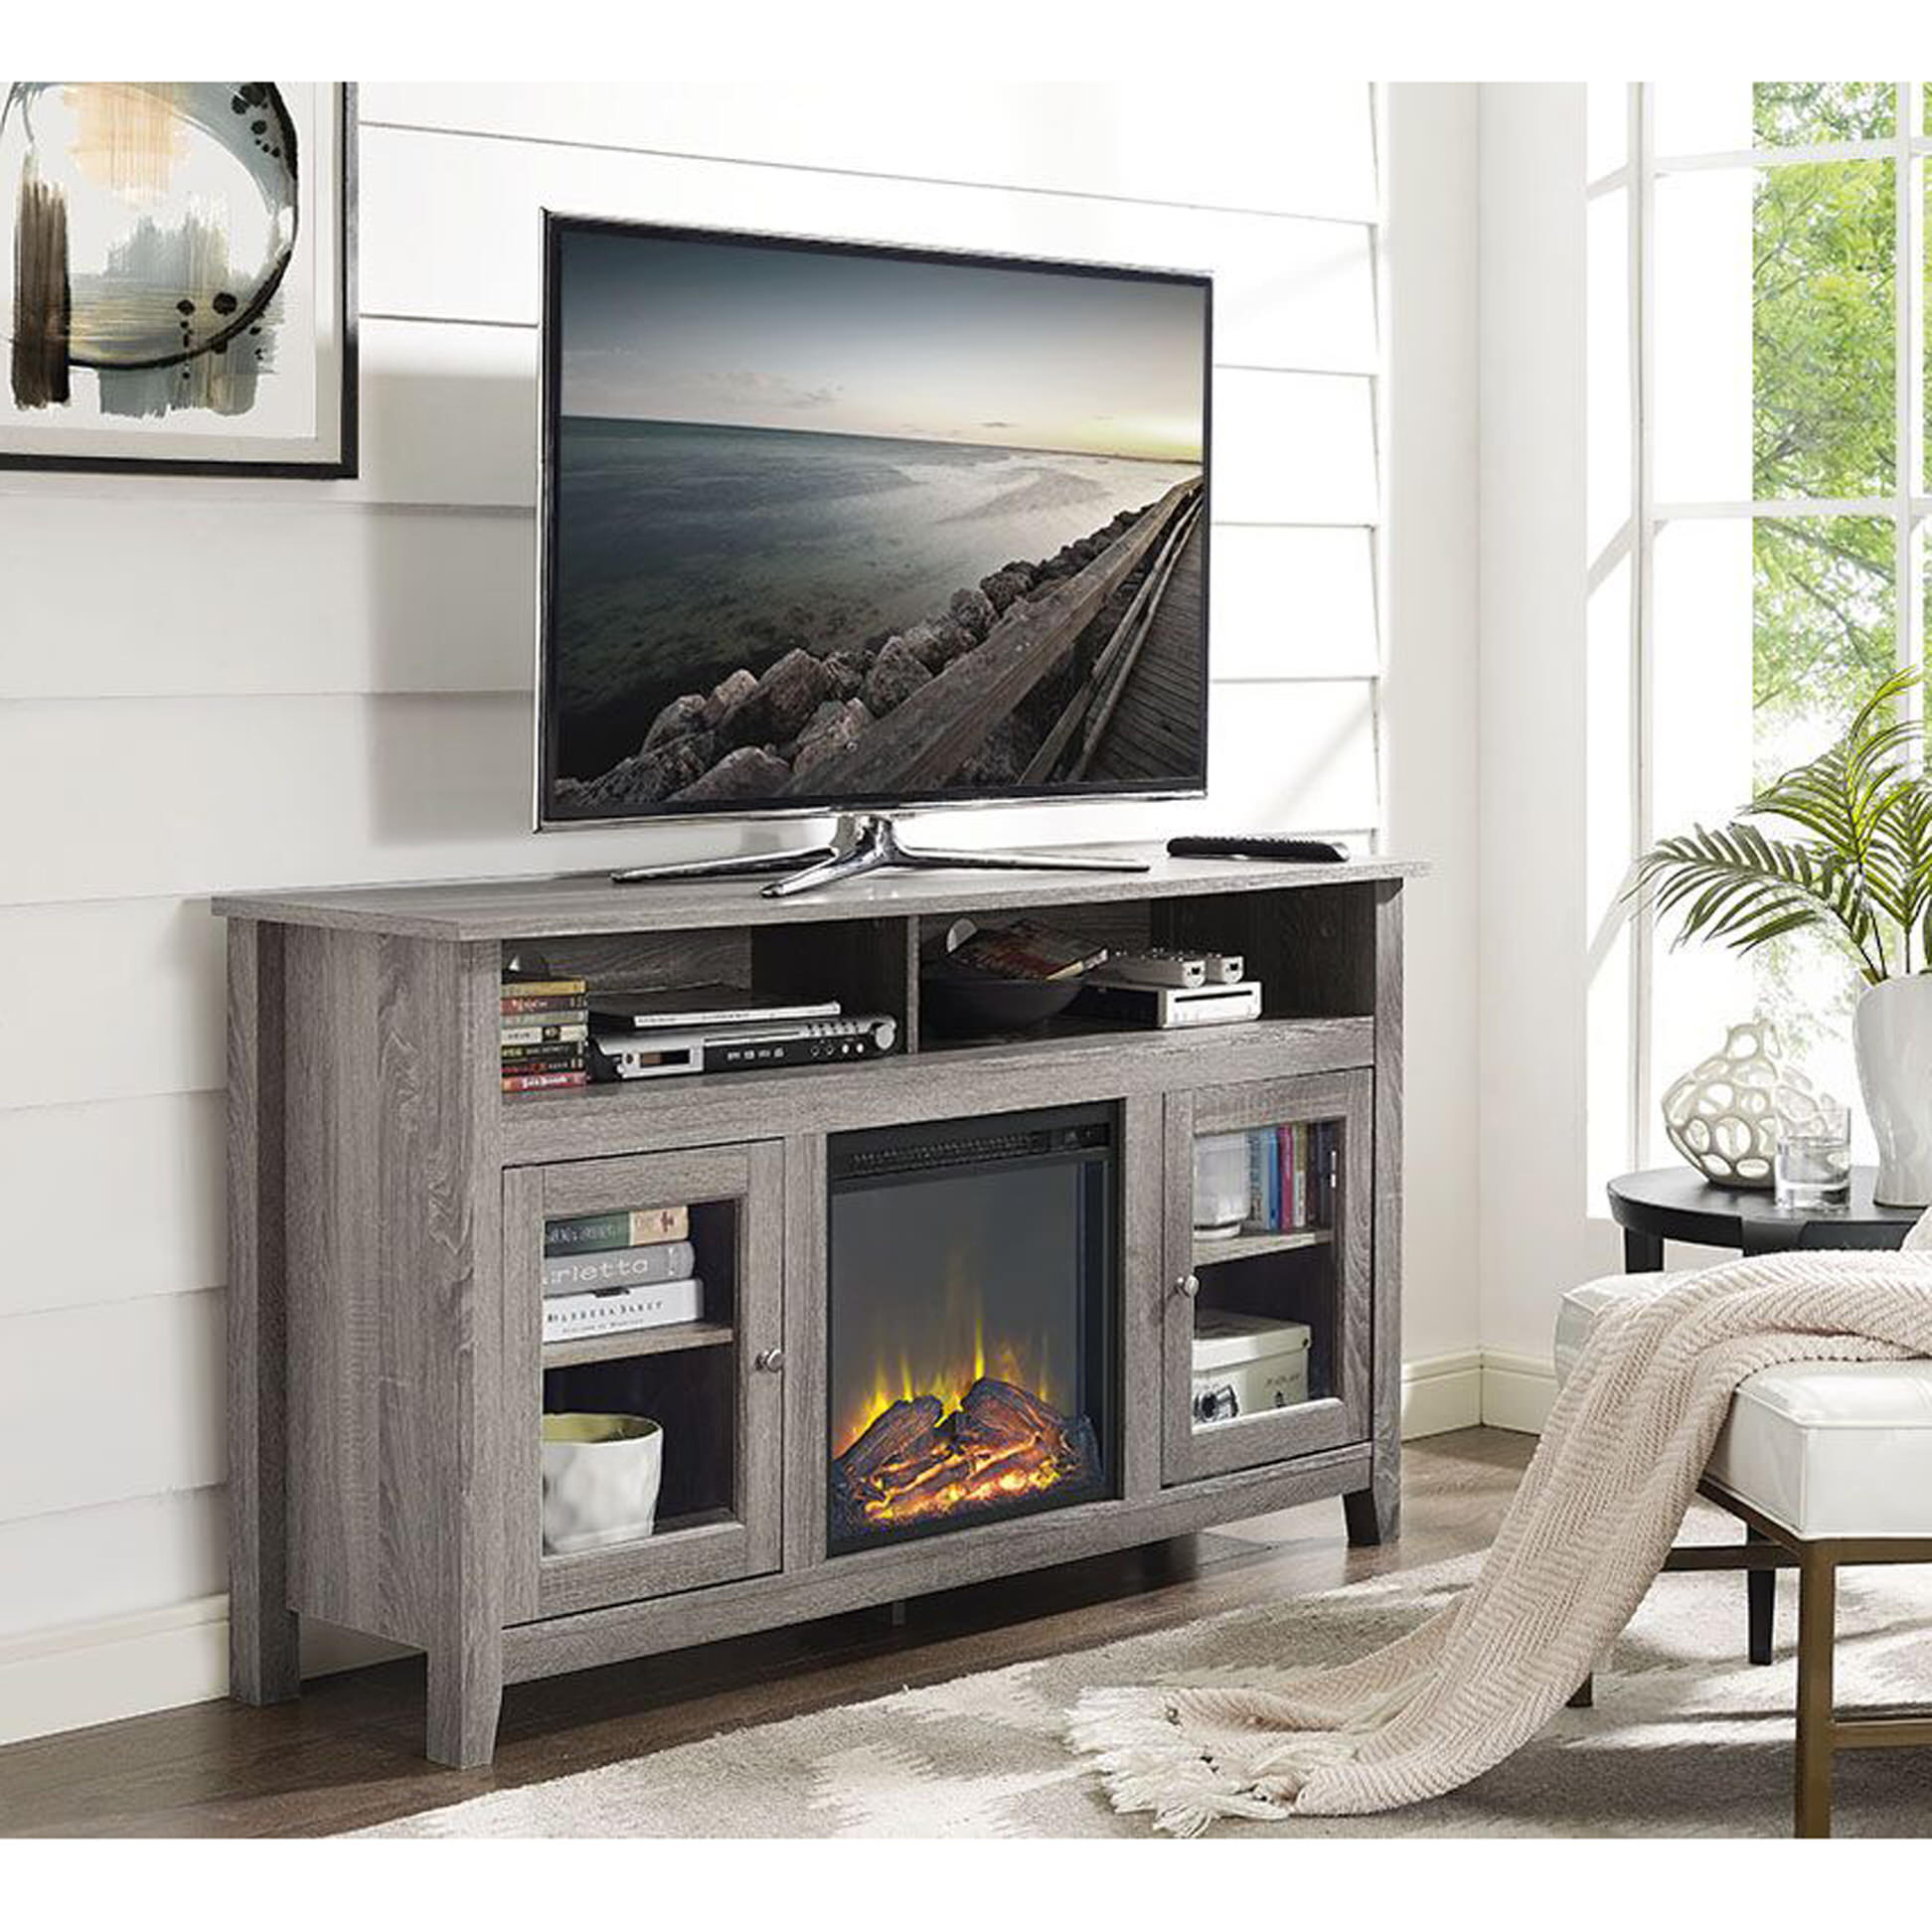 Wasatch 58 Inch Highboy Fireplace TV Stand Driftwood by